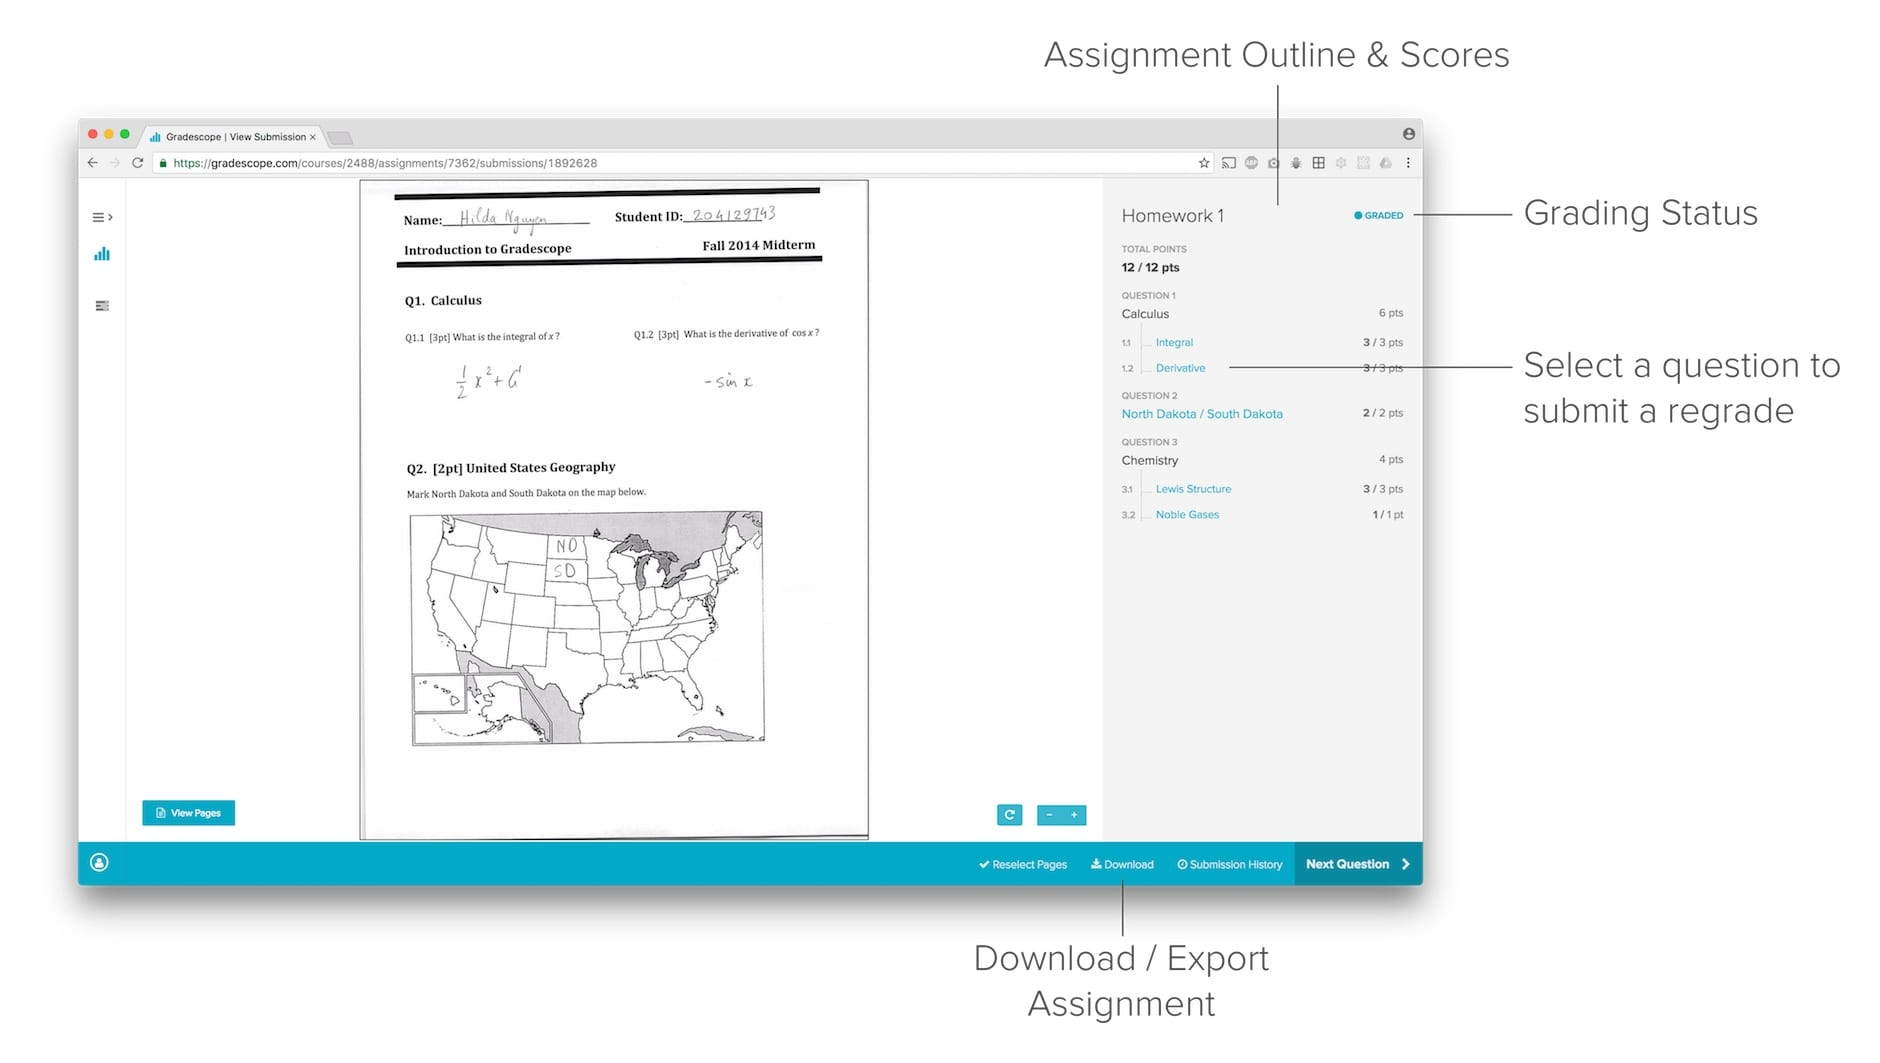 Interface for viewing your submission and the assignment outline after grades are published